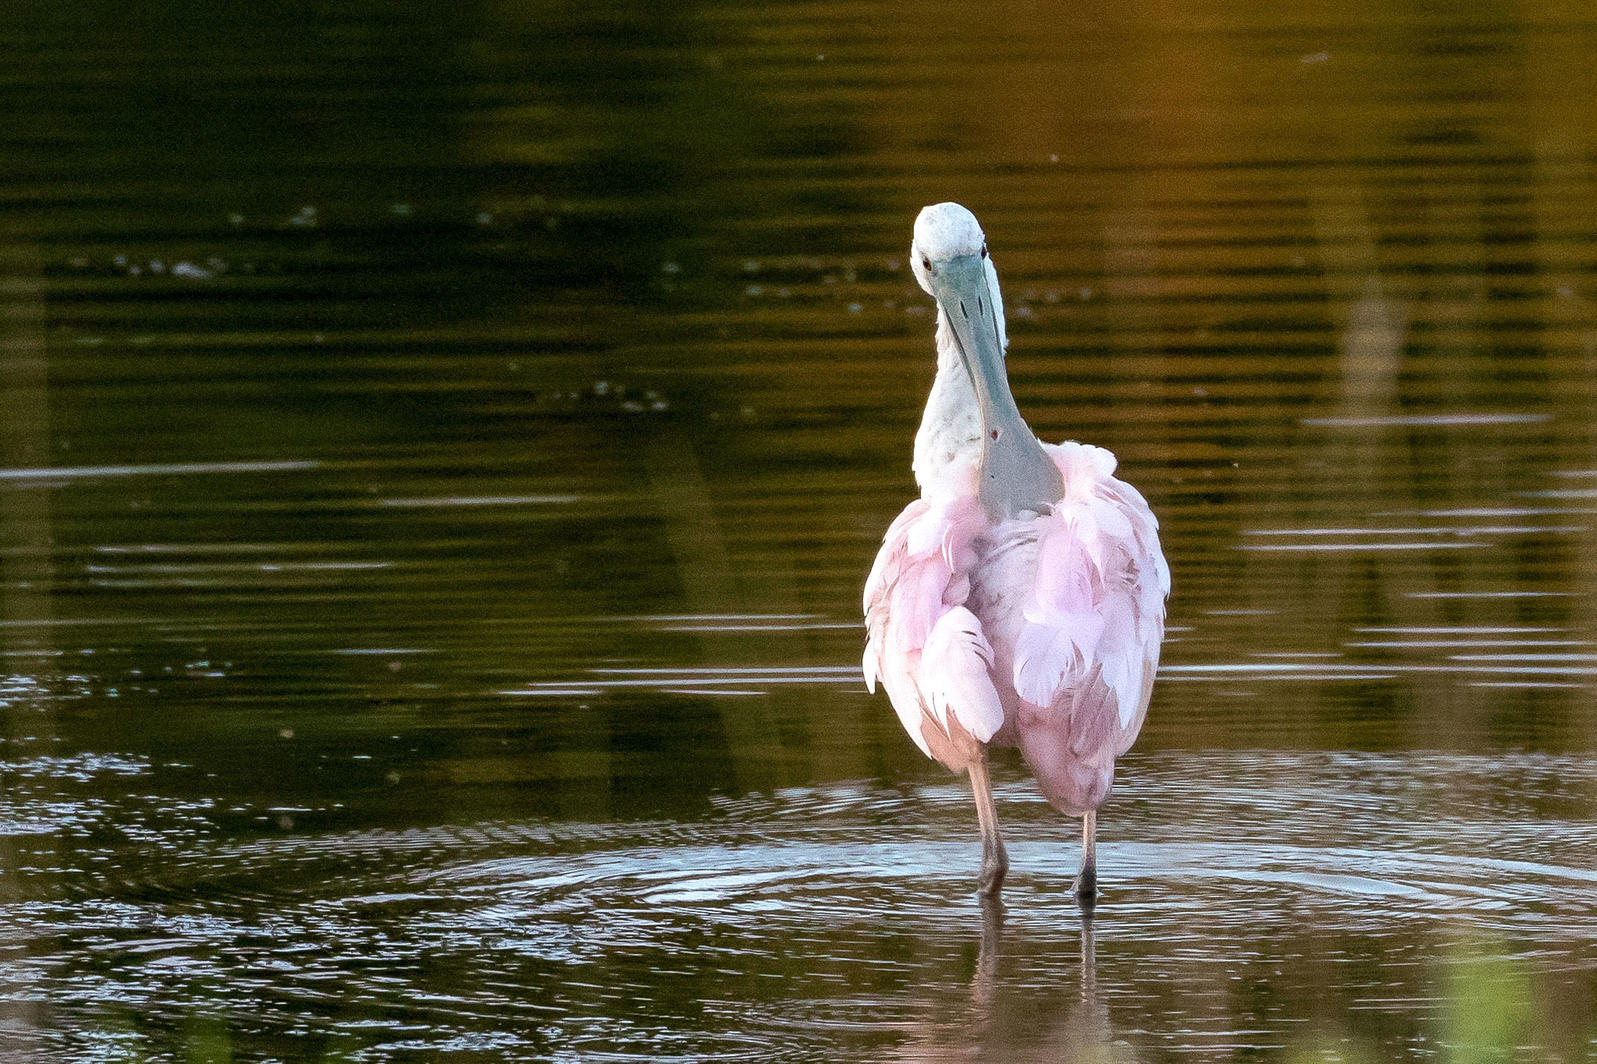 The Roseate Spoonbill spotted in central Maine earlier this month was the first record for the state. Experts from Maine Audubon believe it might be the same bird that later turned up in Connecticut, due to an odd dent in its bill. Louis Bevier